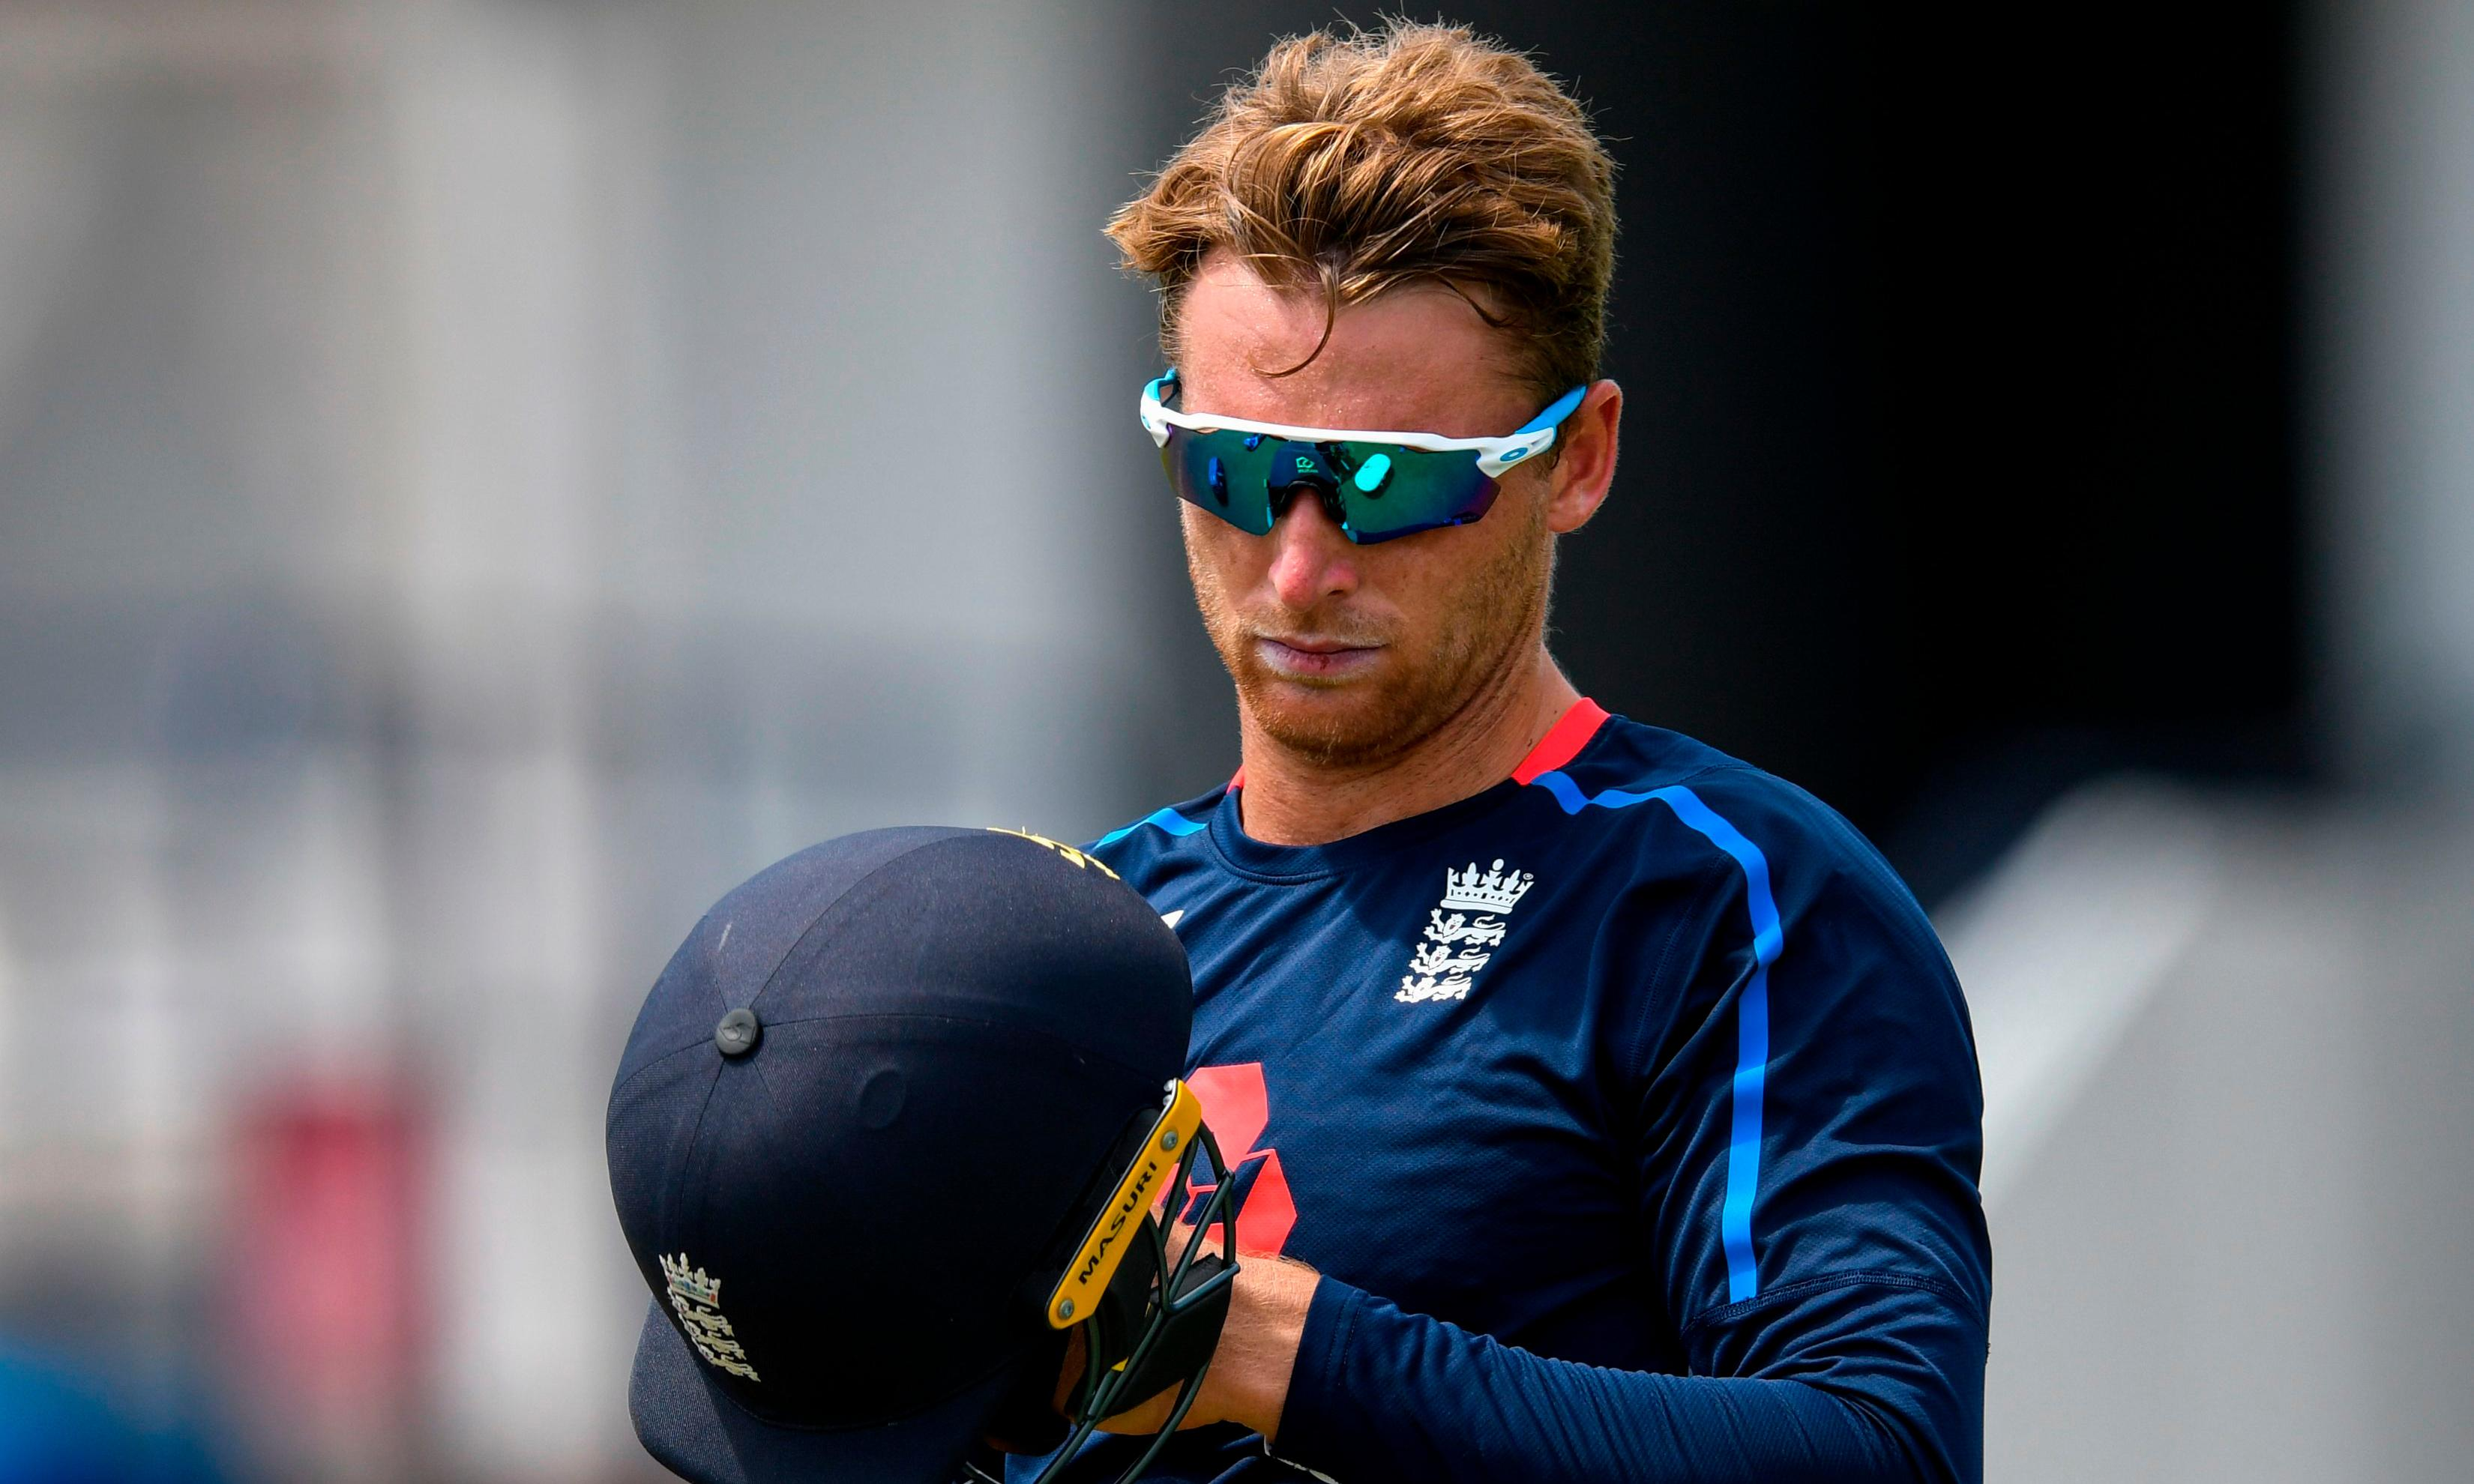 England rest Buttler and Stokes and recall Malan and Billings for T20 series